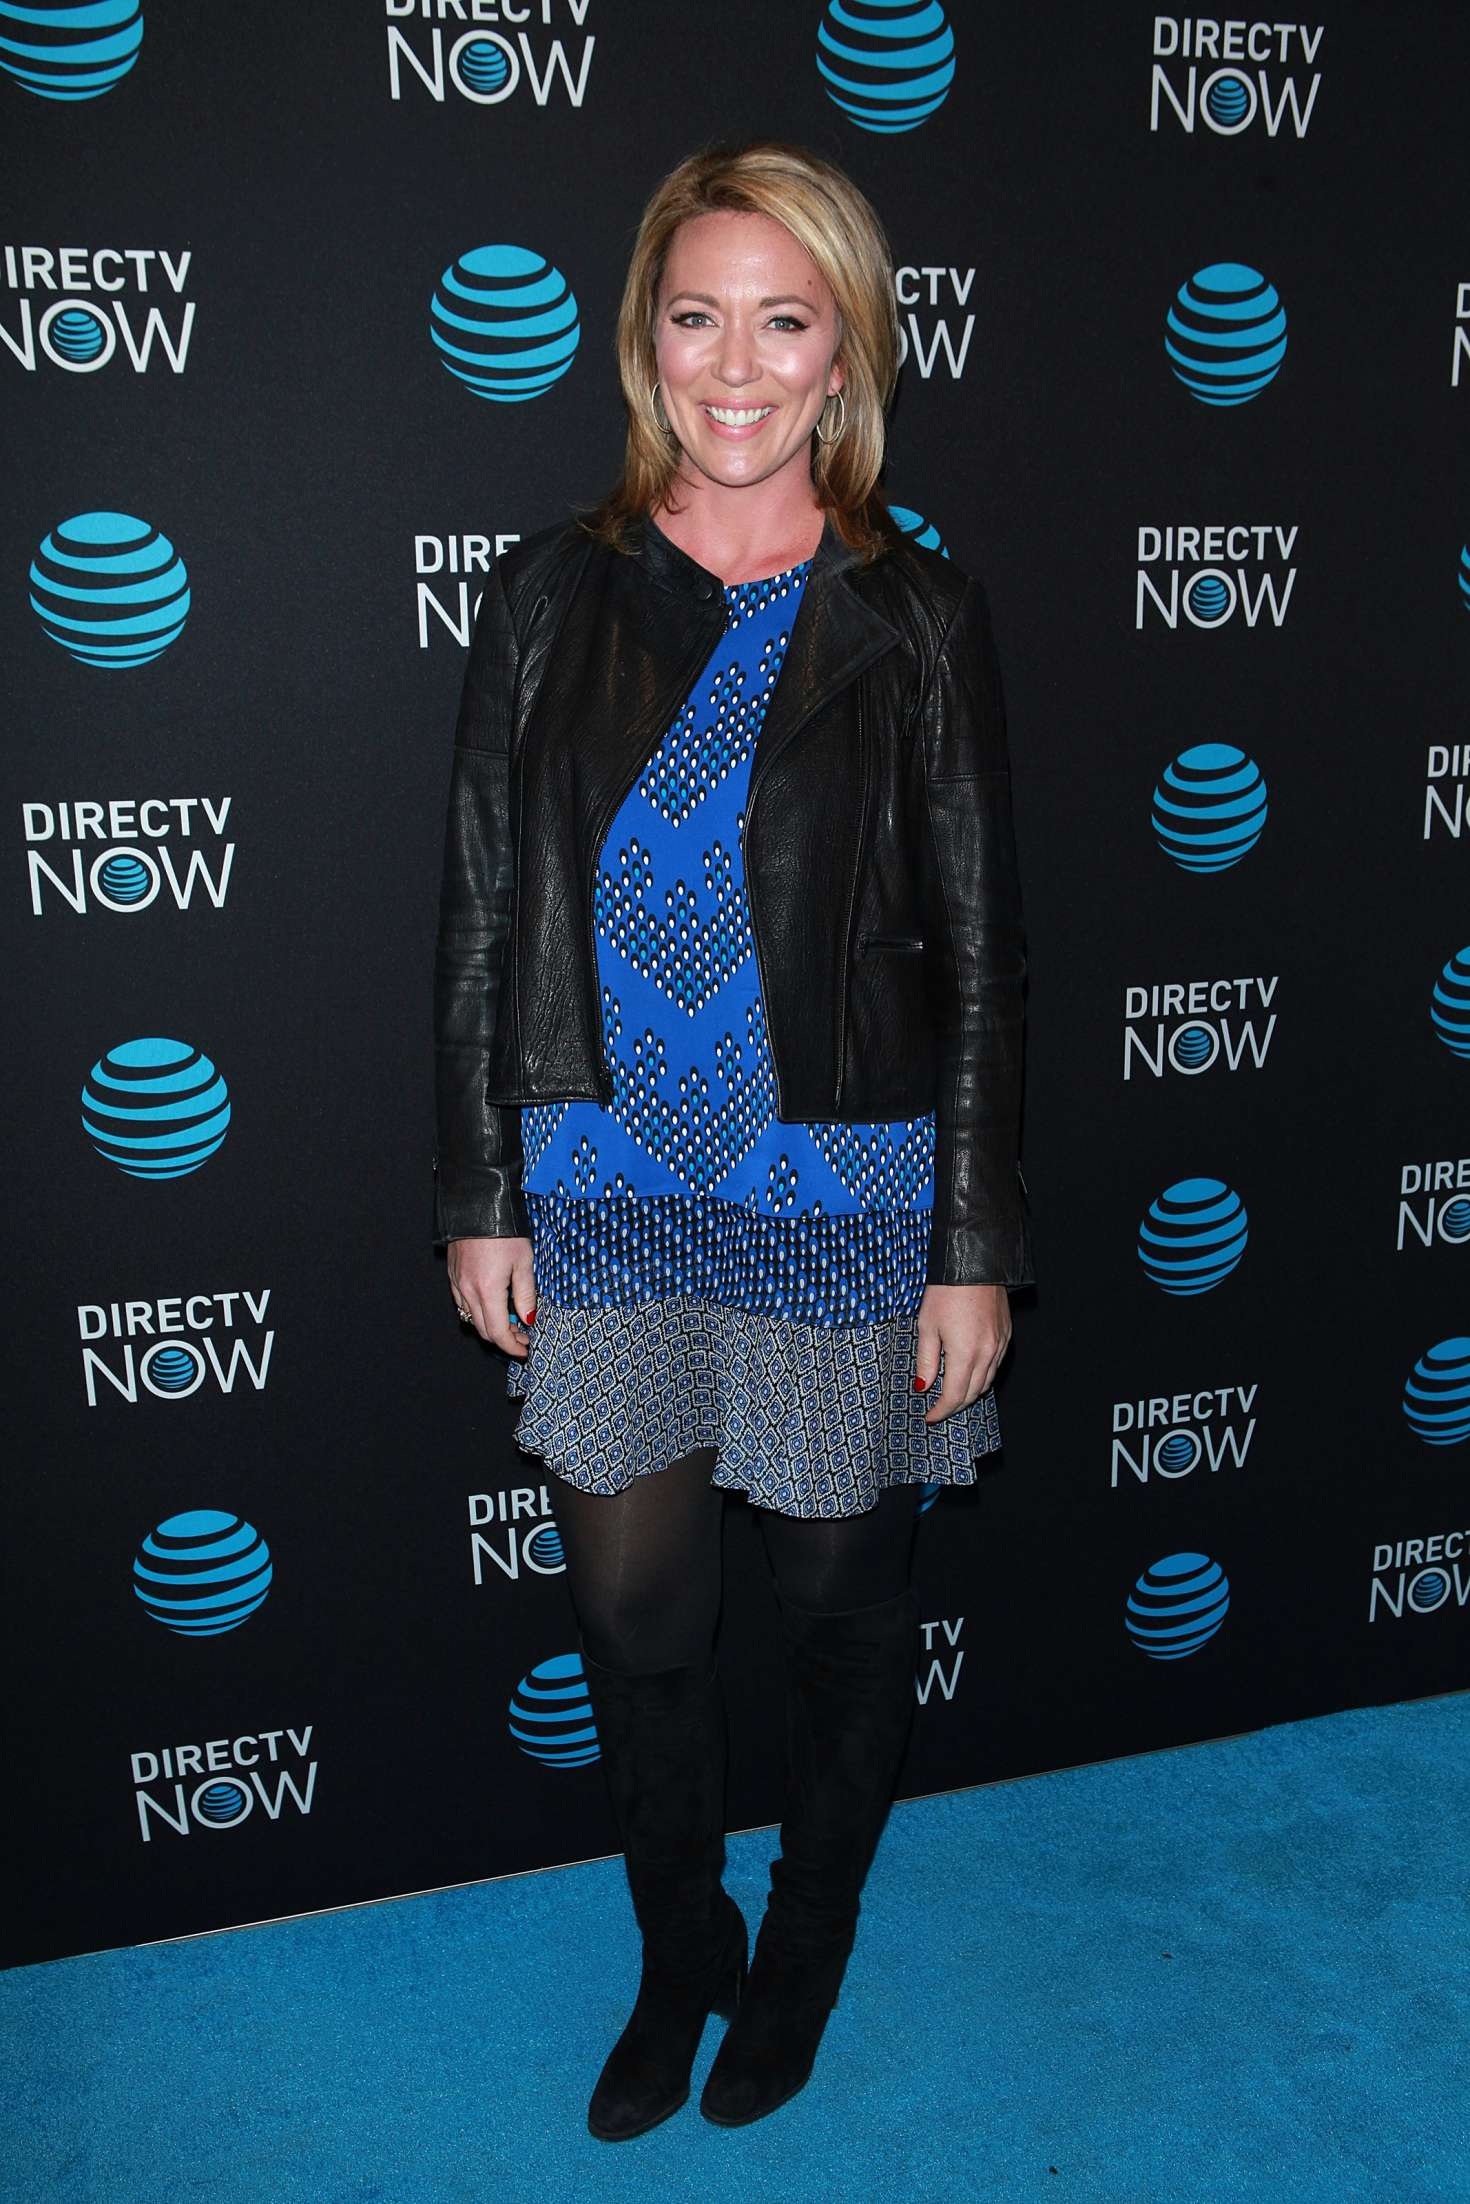 Brooke Baldwin: AT&T Celebrates The Launch Of DirectTV Now ...